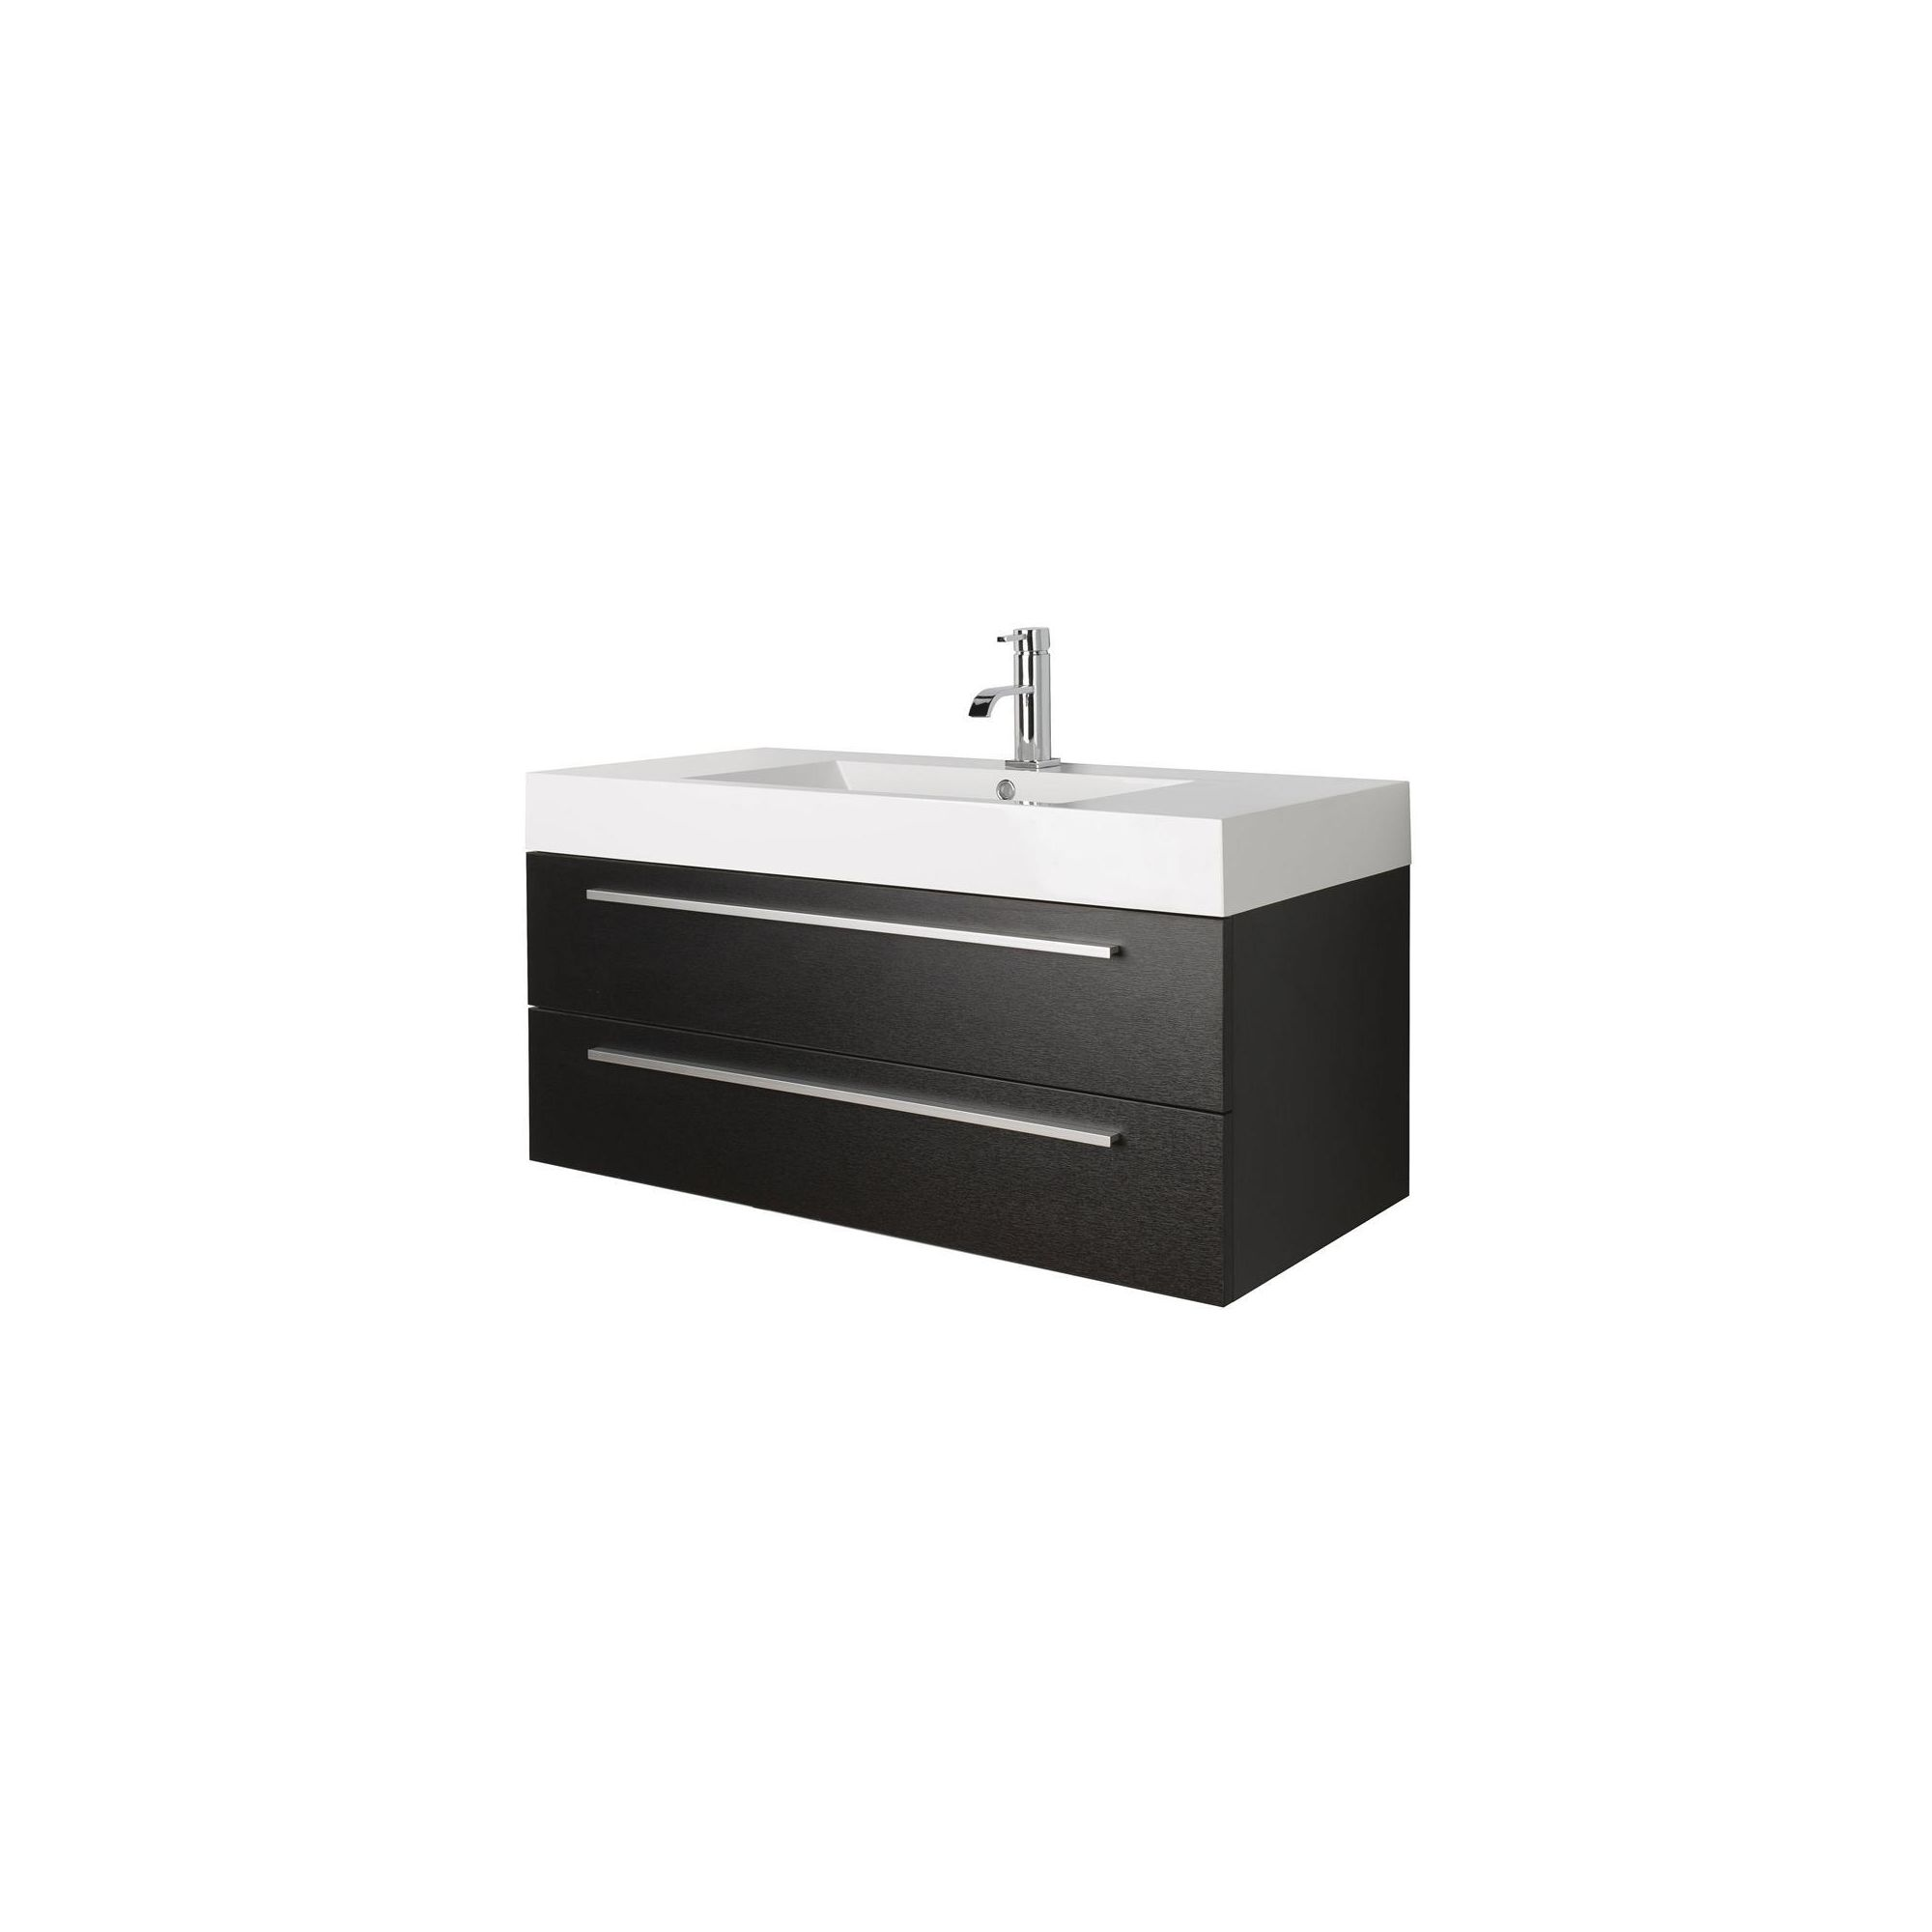 Premier Relax Wall Mounted Basin and Cabinet Black Wood Finish